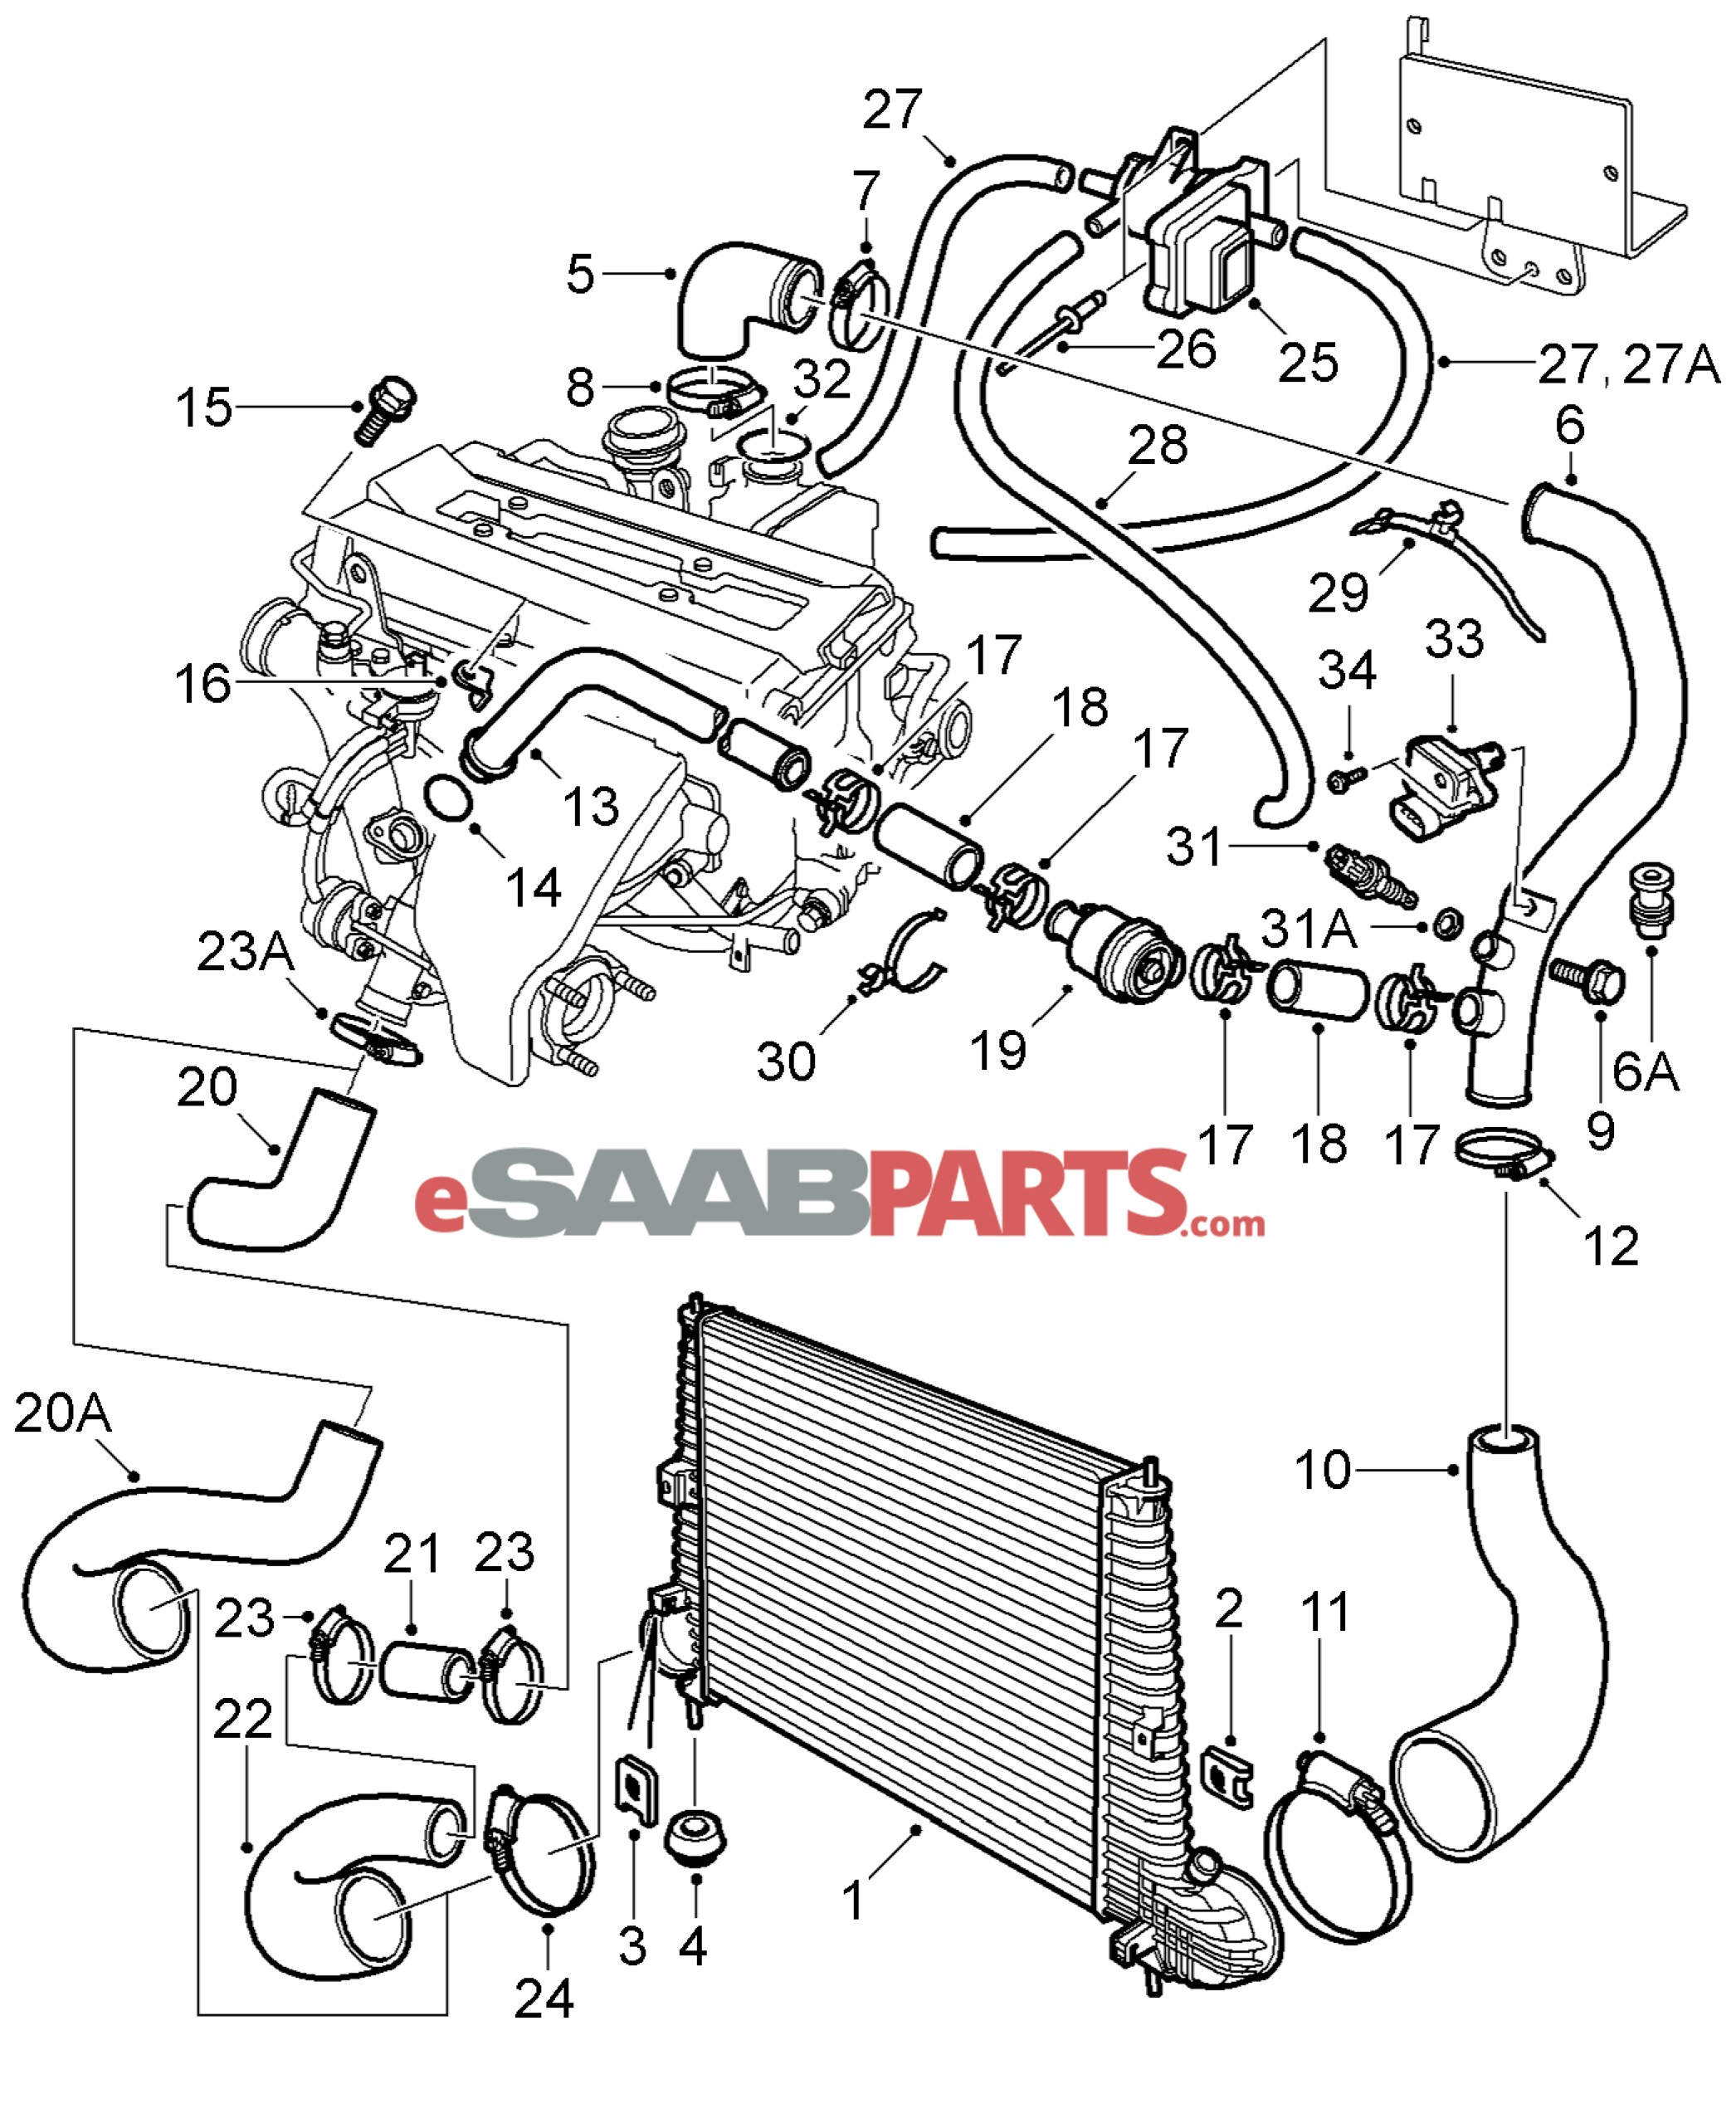 Chevrolet 3 4 Engine Diagram Free Download Oasis Dlco Wiring 2007 Chevy Trailblazer Mirror Picture Alarm For 2003